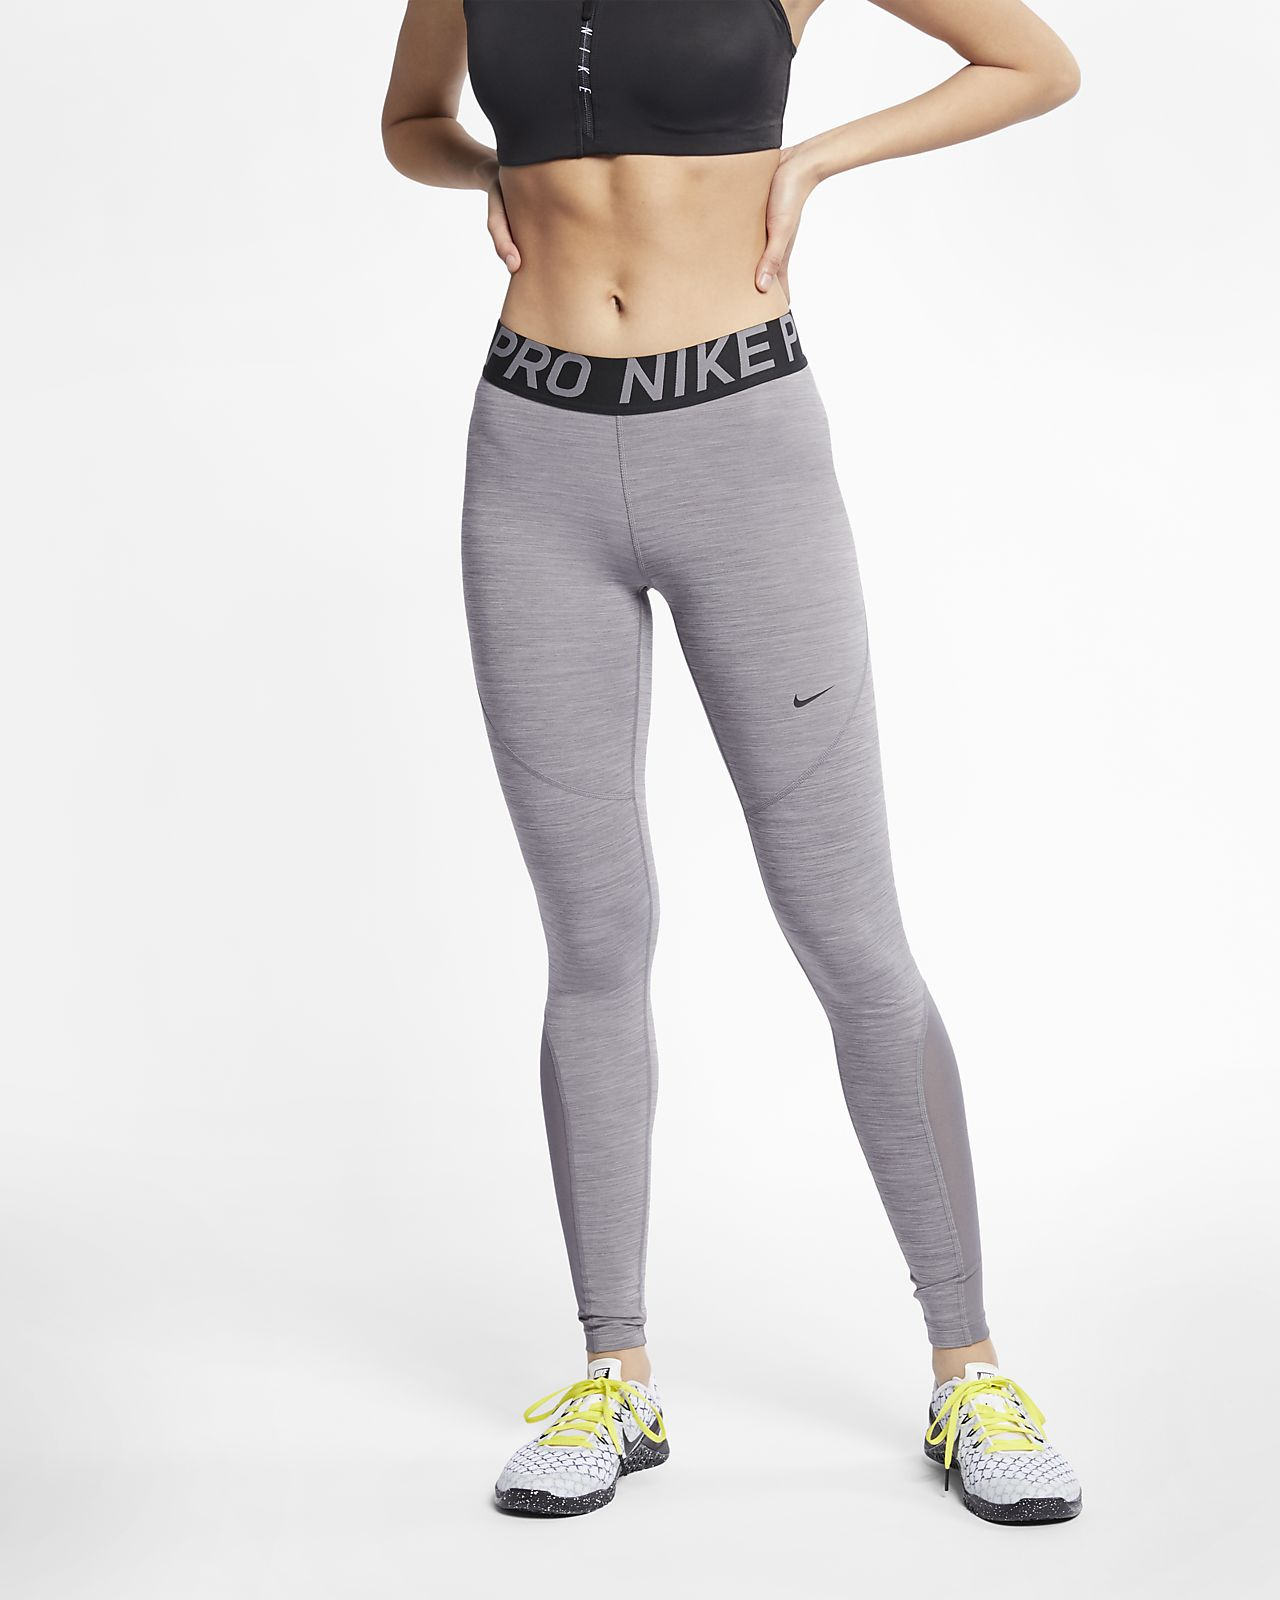 0c207cecac Nike Pro Women's Tights